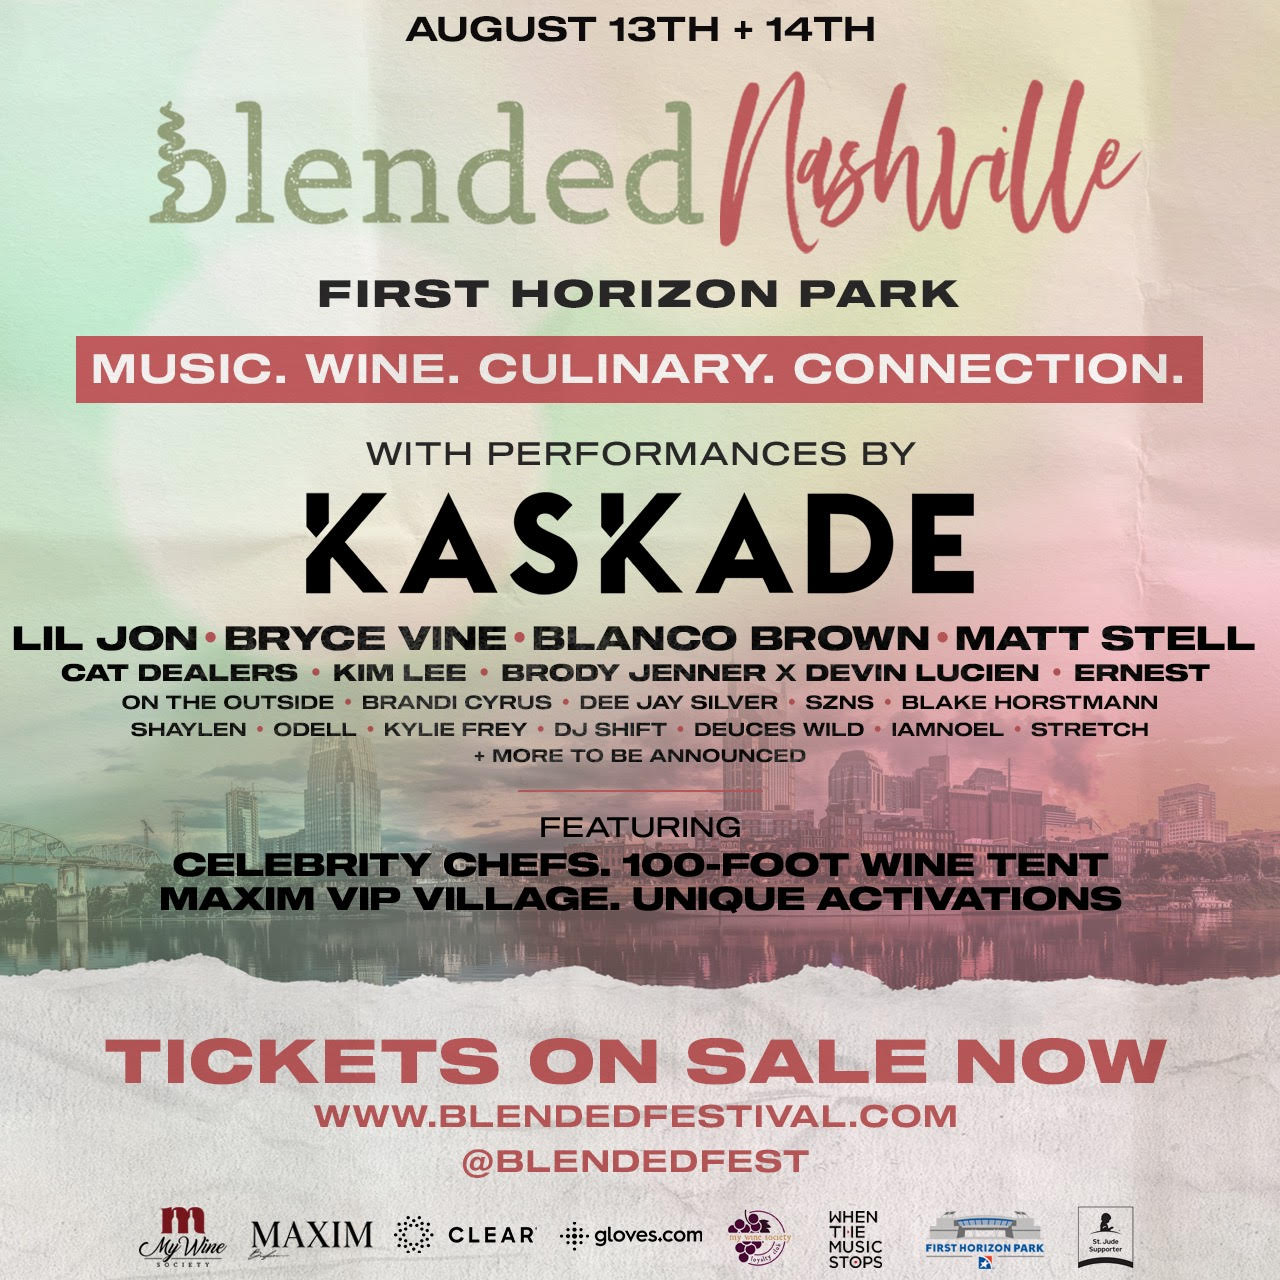 Blended Festival Lineup featuring Kaskade, Lil Jon, Matt Stell, Bryce Vine, Blanco Brown, and more.